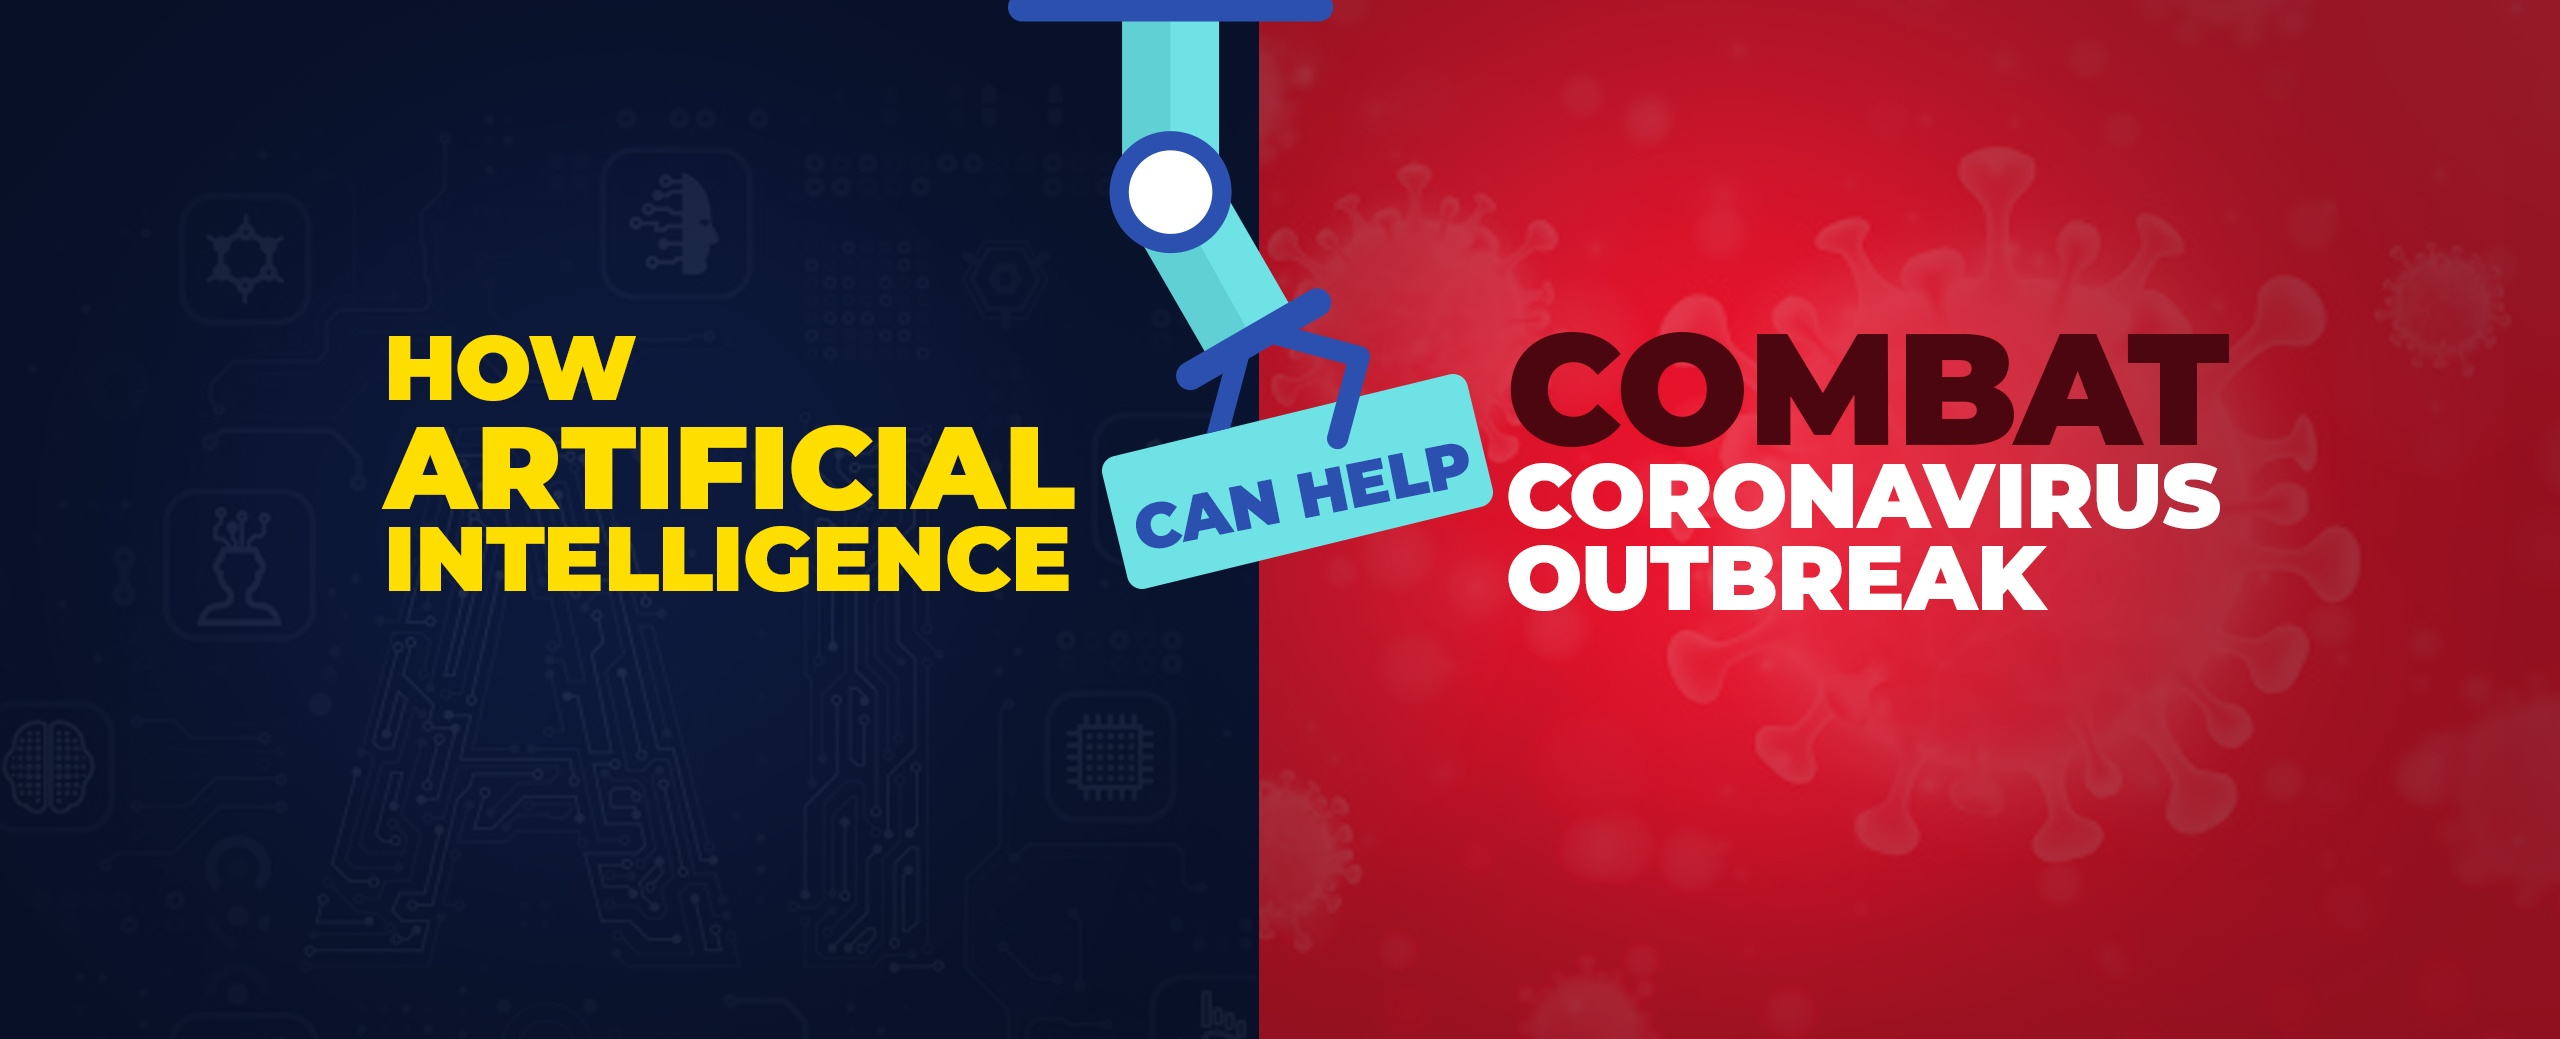 How Artificial Intelligence can help Combat Coronavirus Outbreak copy